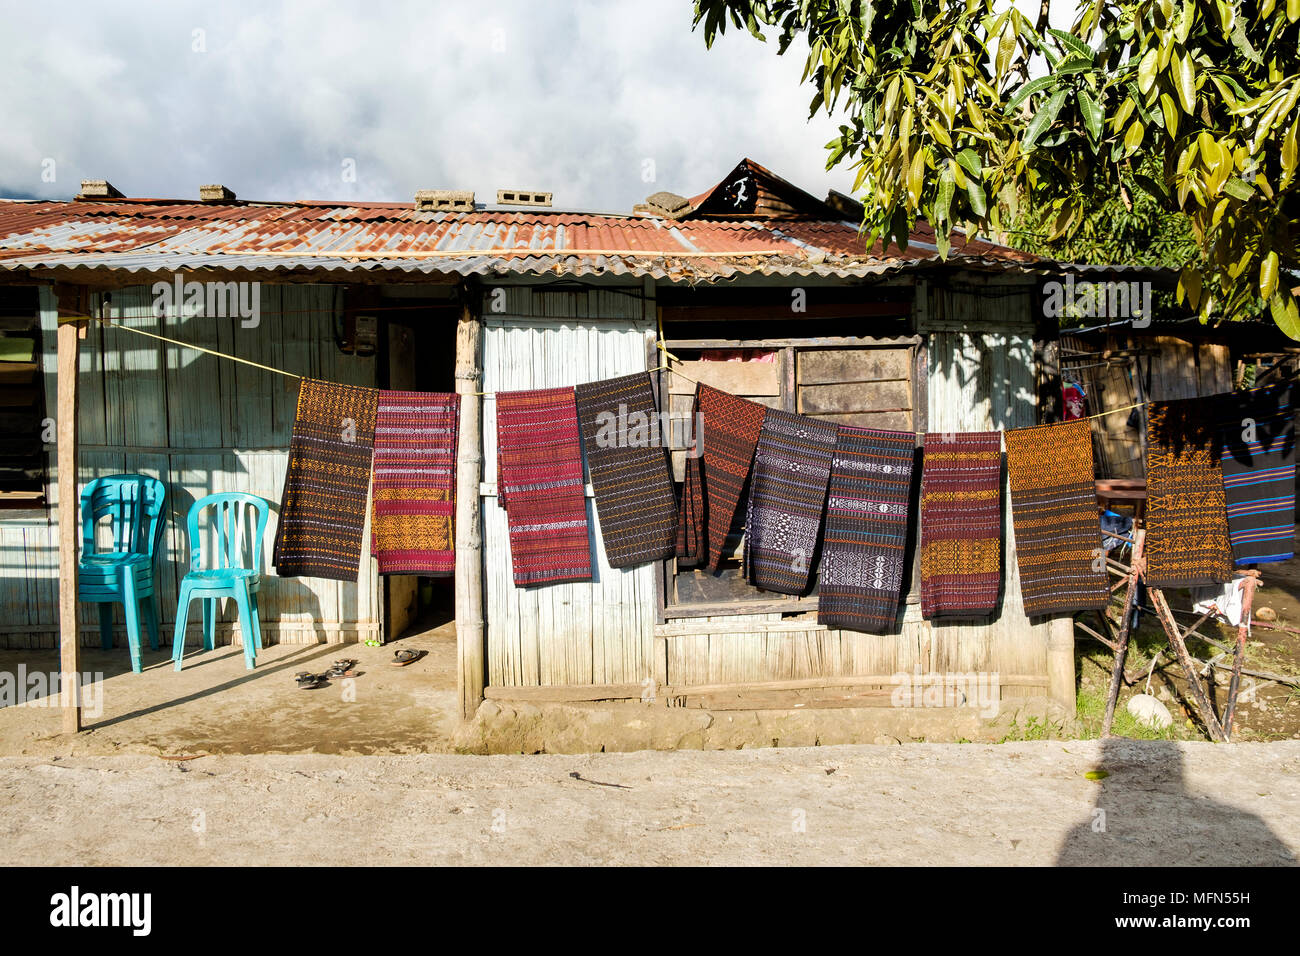 Pieces of ikat (a traditional weaving technique widely found in Indonesia) hanging on a rope in front of a house in Moni, Flores Island (East Nusa Ten - Stock Image